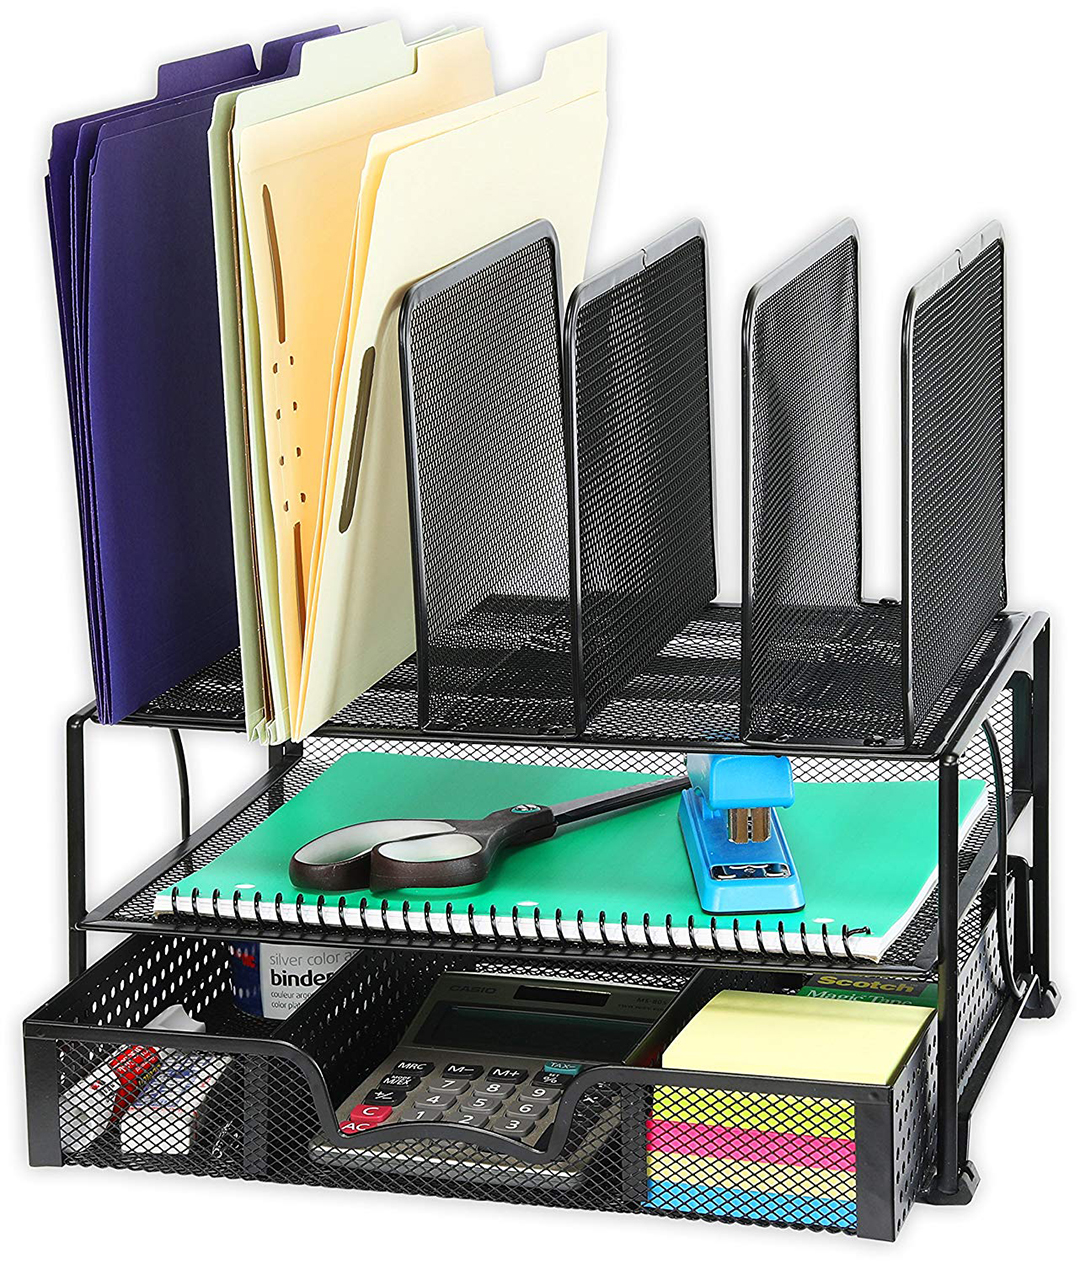 Black metal mesh desk organizer with drawer on bottom and 5 file folder spaces on top